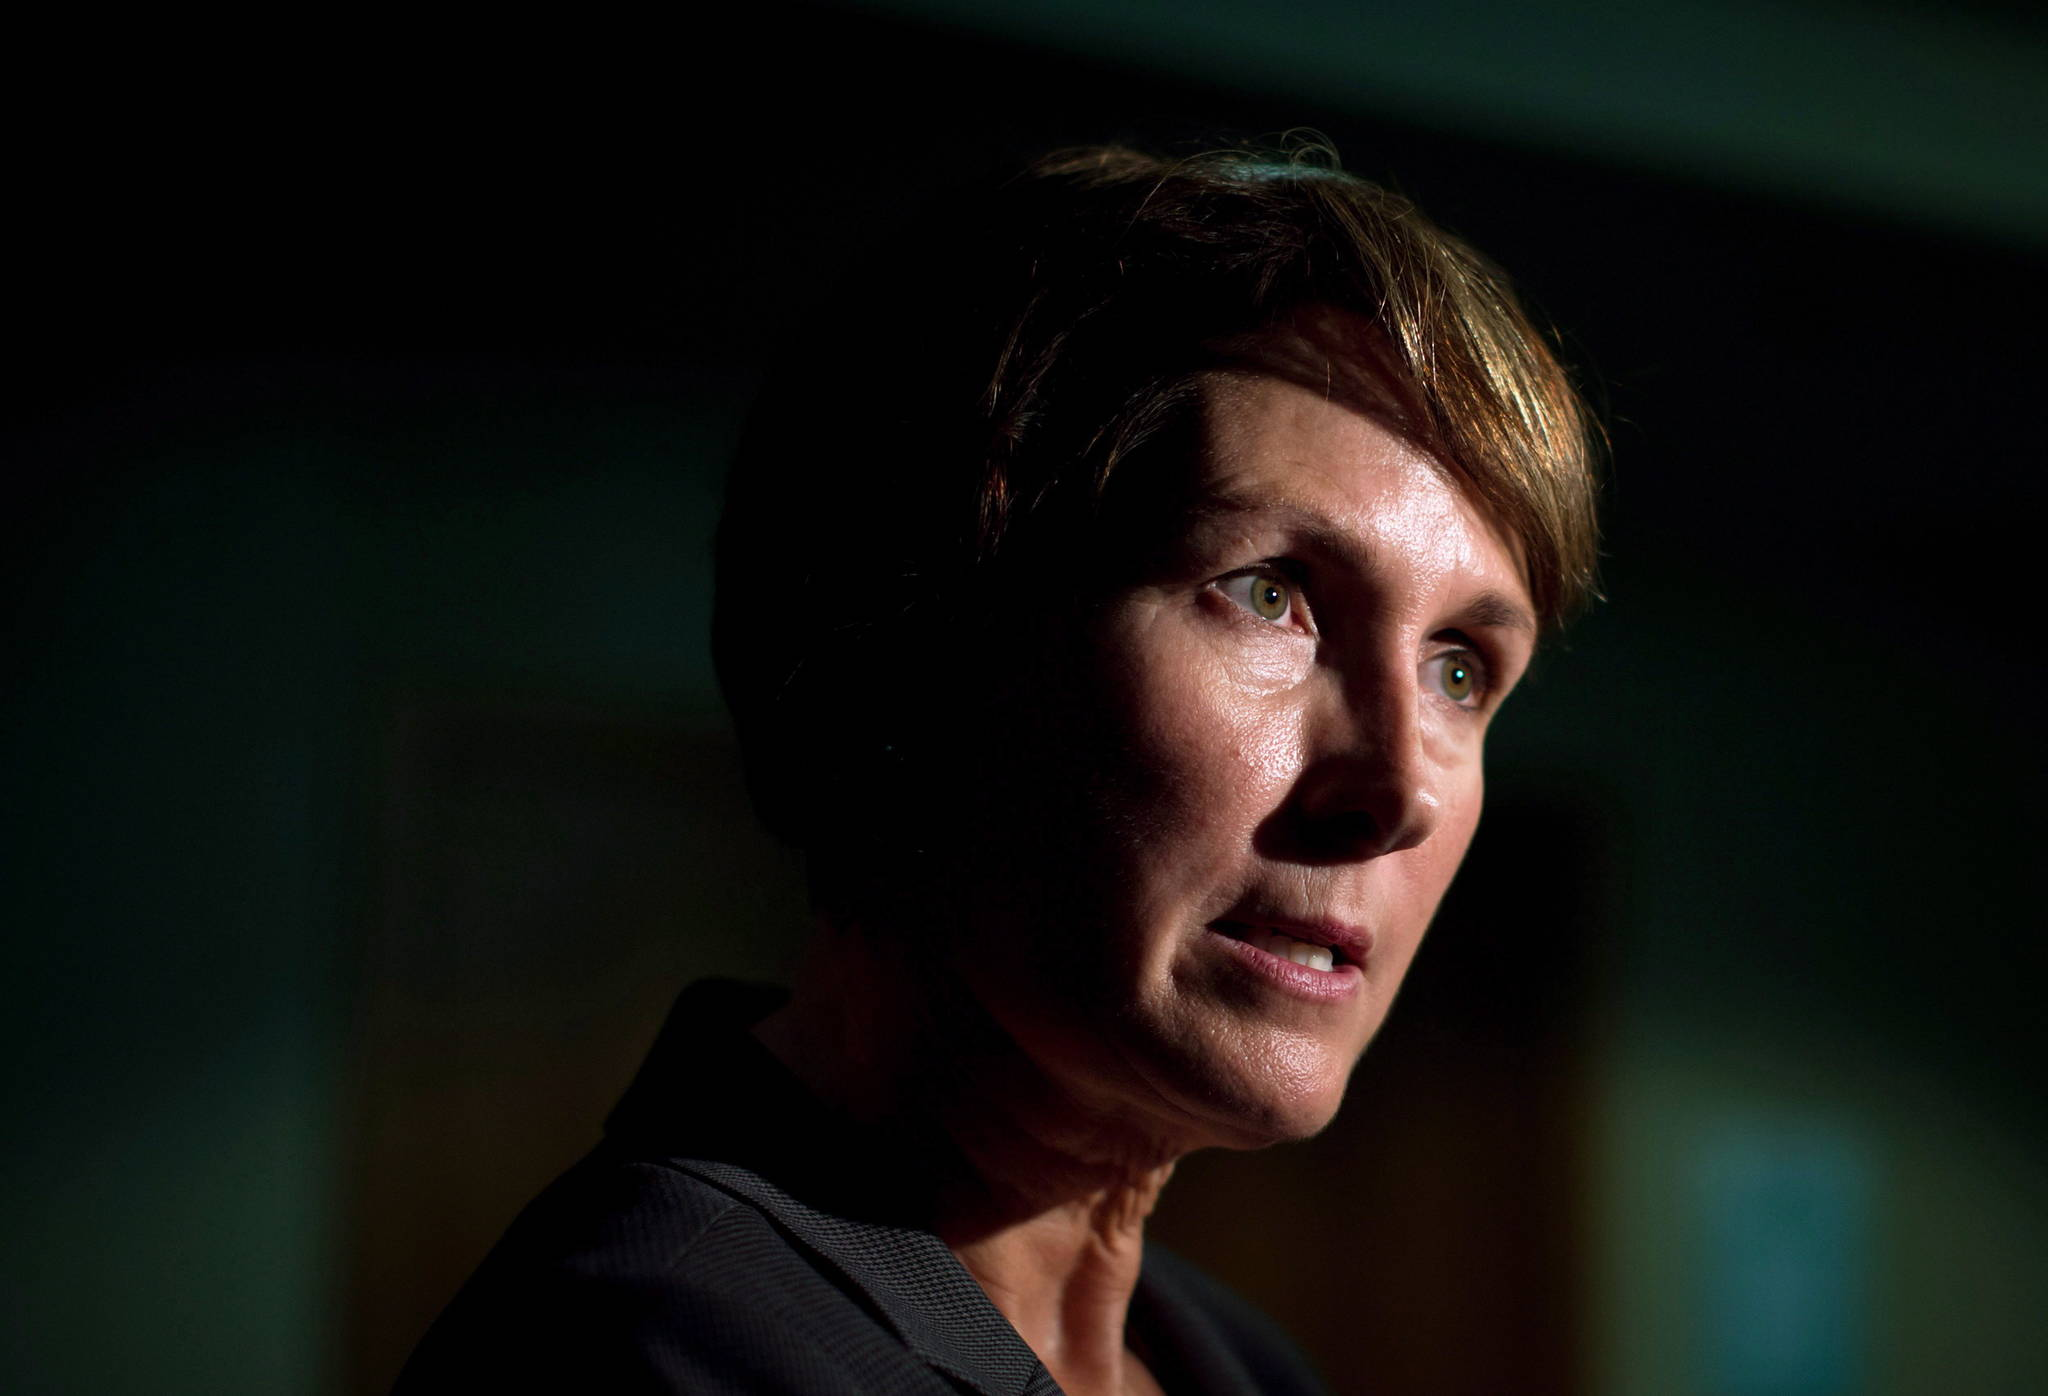 Mary Ellen Turpel-Lafond speaks to a reporter in Vancouver on November 13, 2015. (THE CANADIAN PRESS/Darryl Dyck)